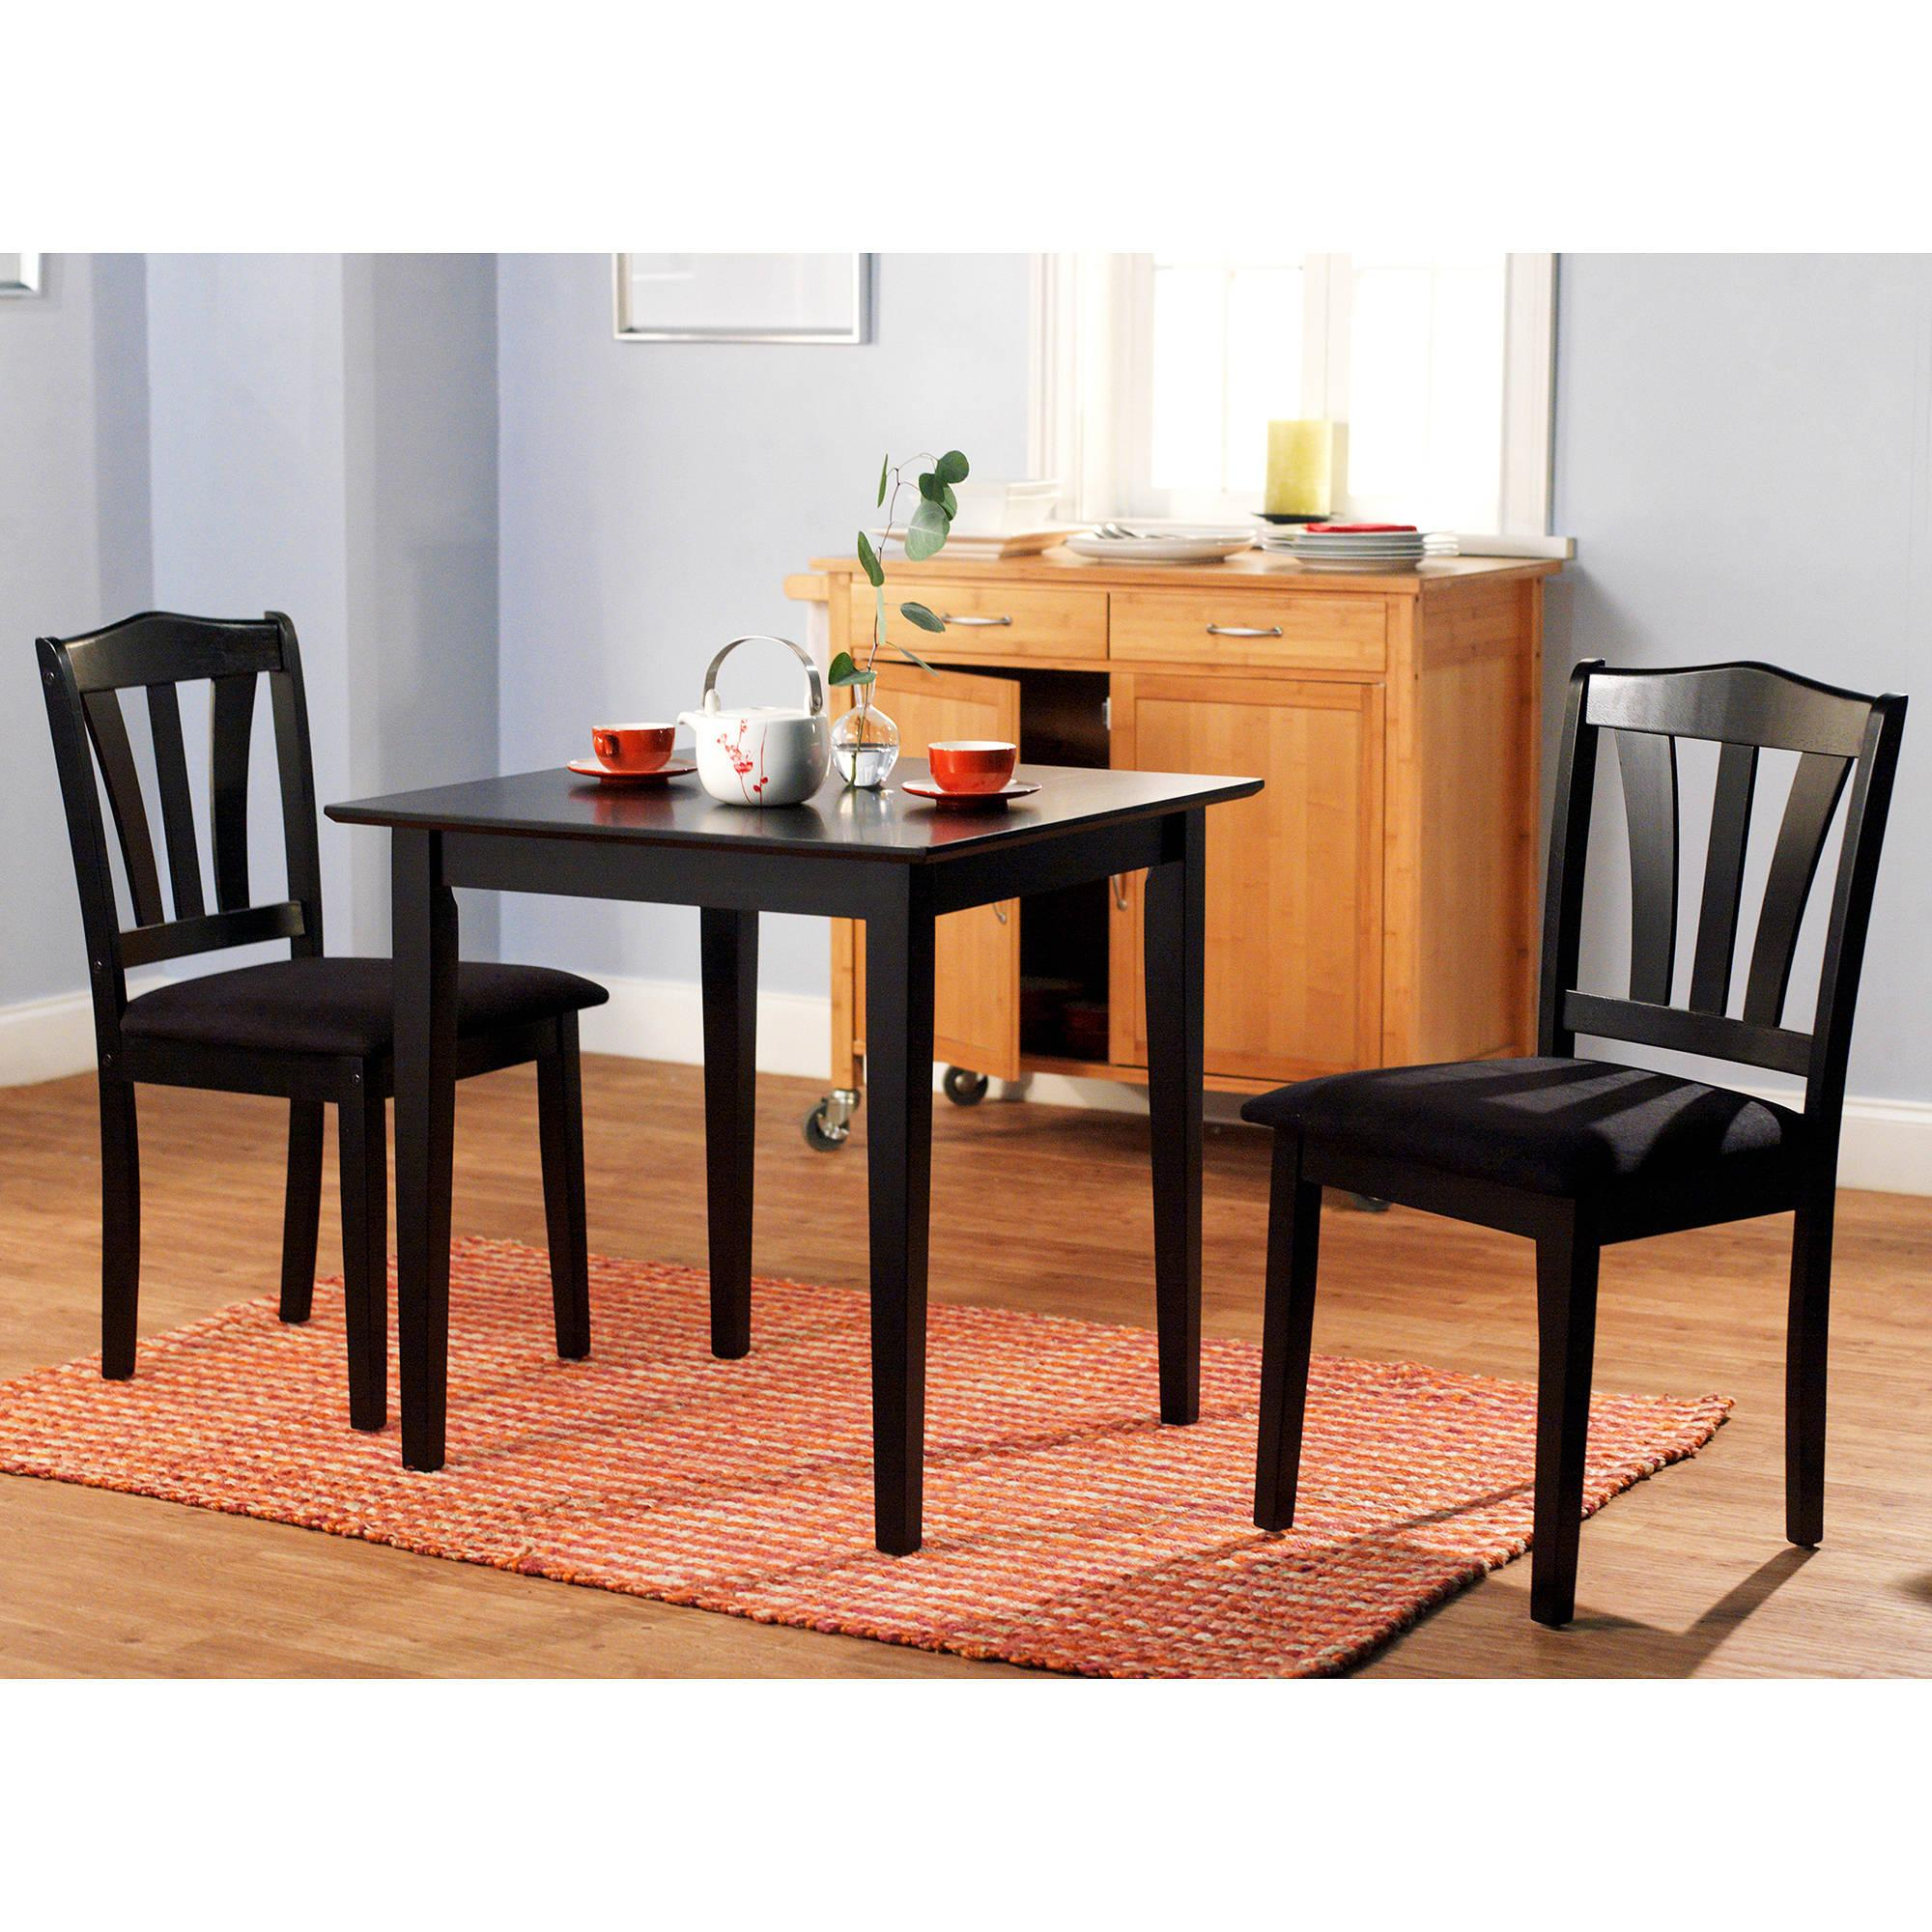 Apartment Kitchen Table And Chairs: 3 Piece Dining Set Table 2 Chairs Kitchen Room Wood